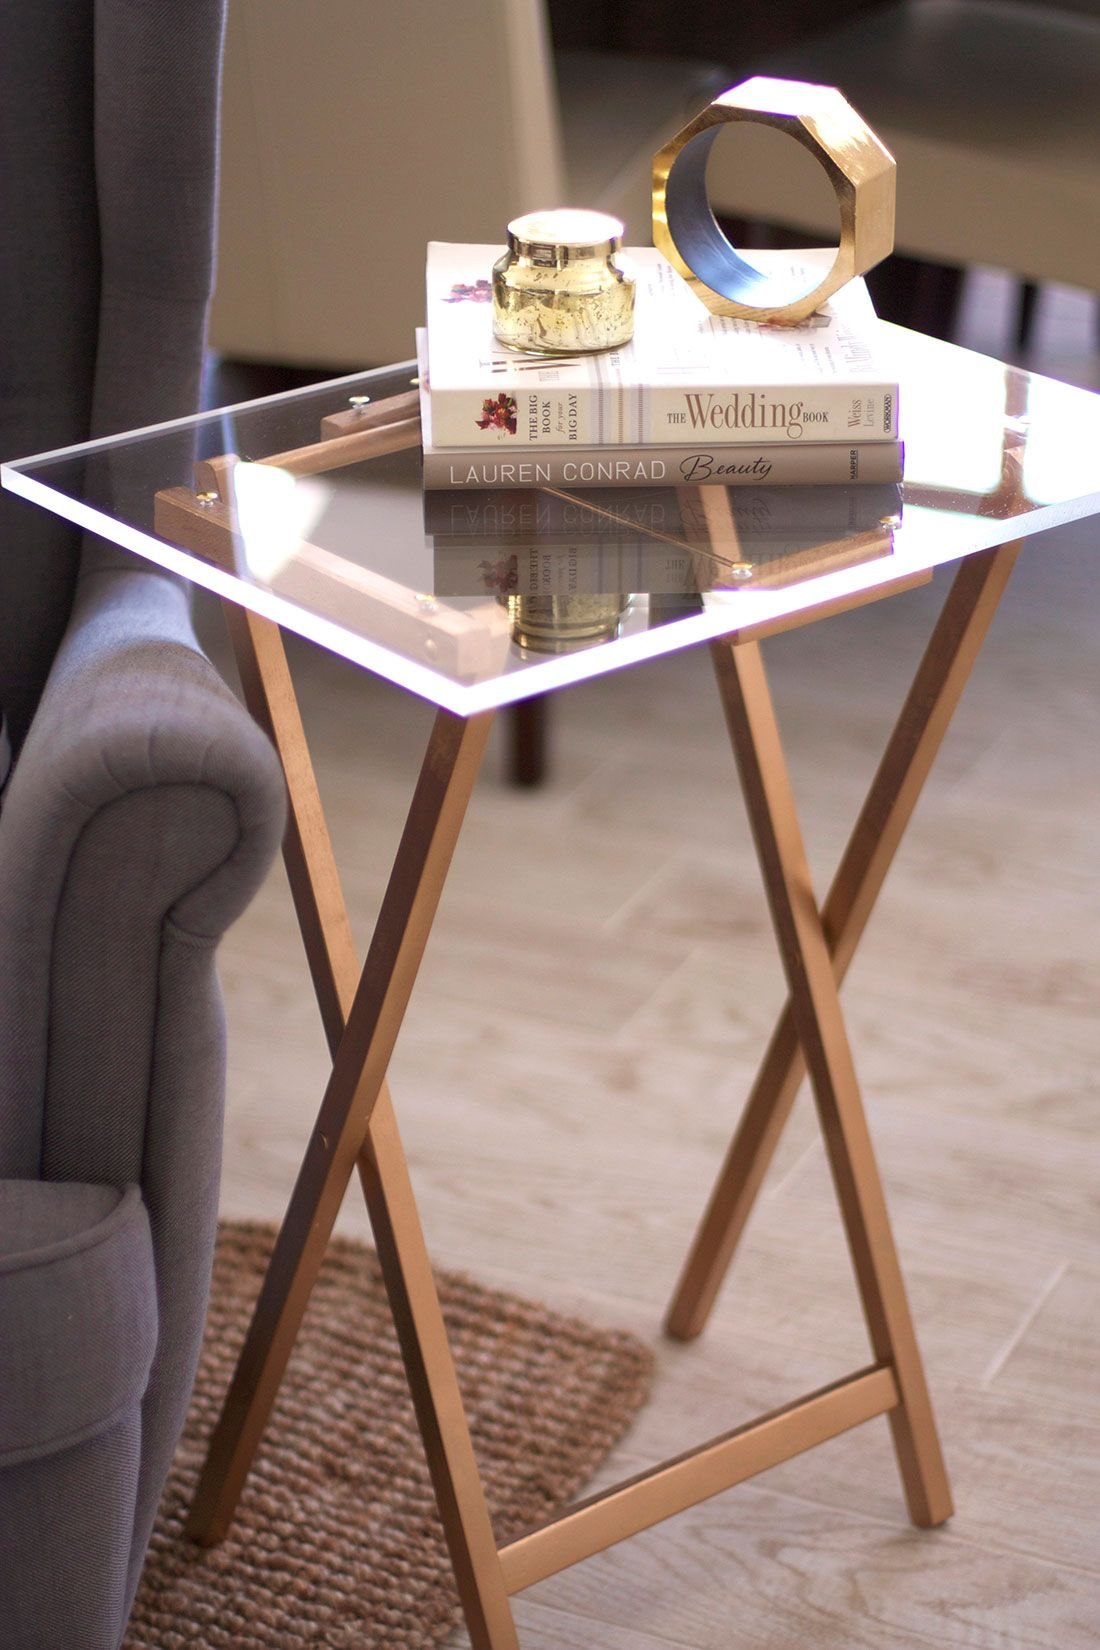 Diy Lucite Tray Table Good Place To Buy Lucite/plexiglass